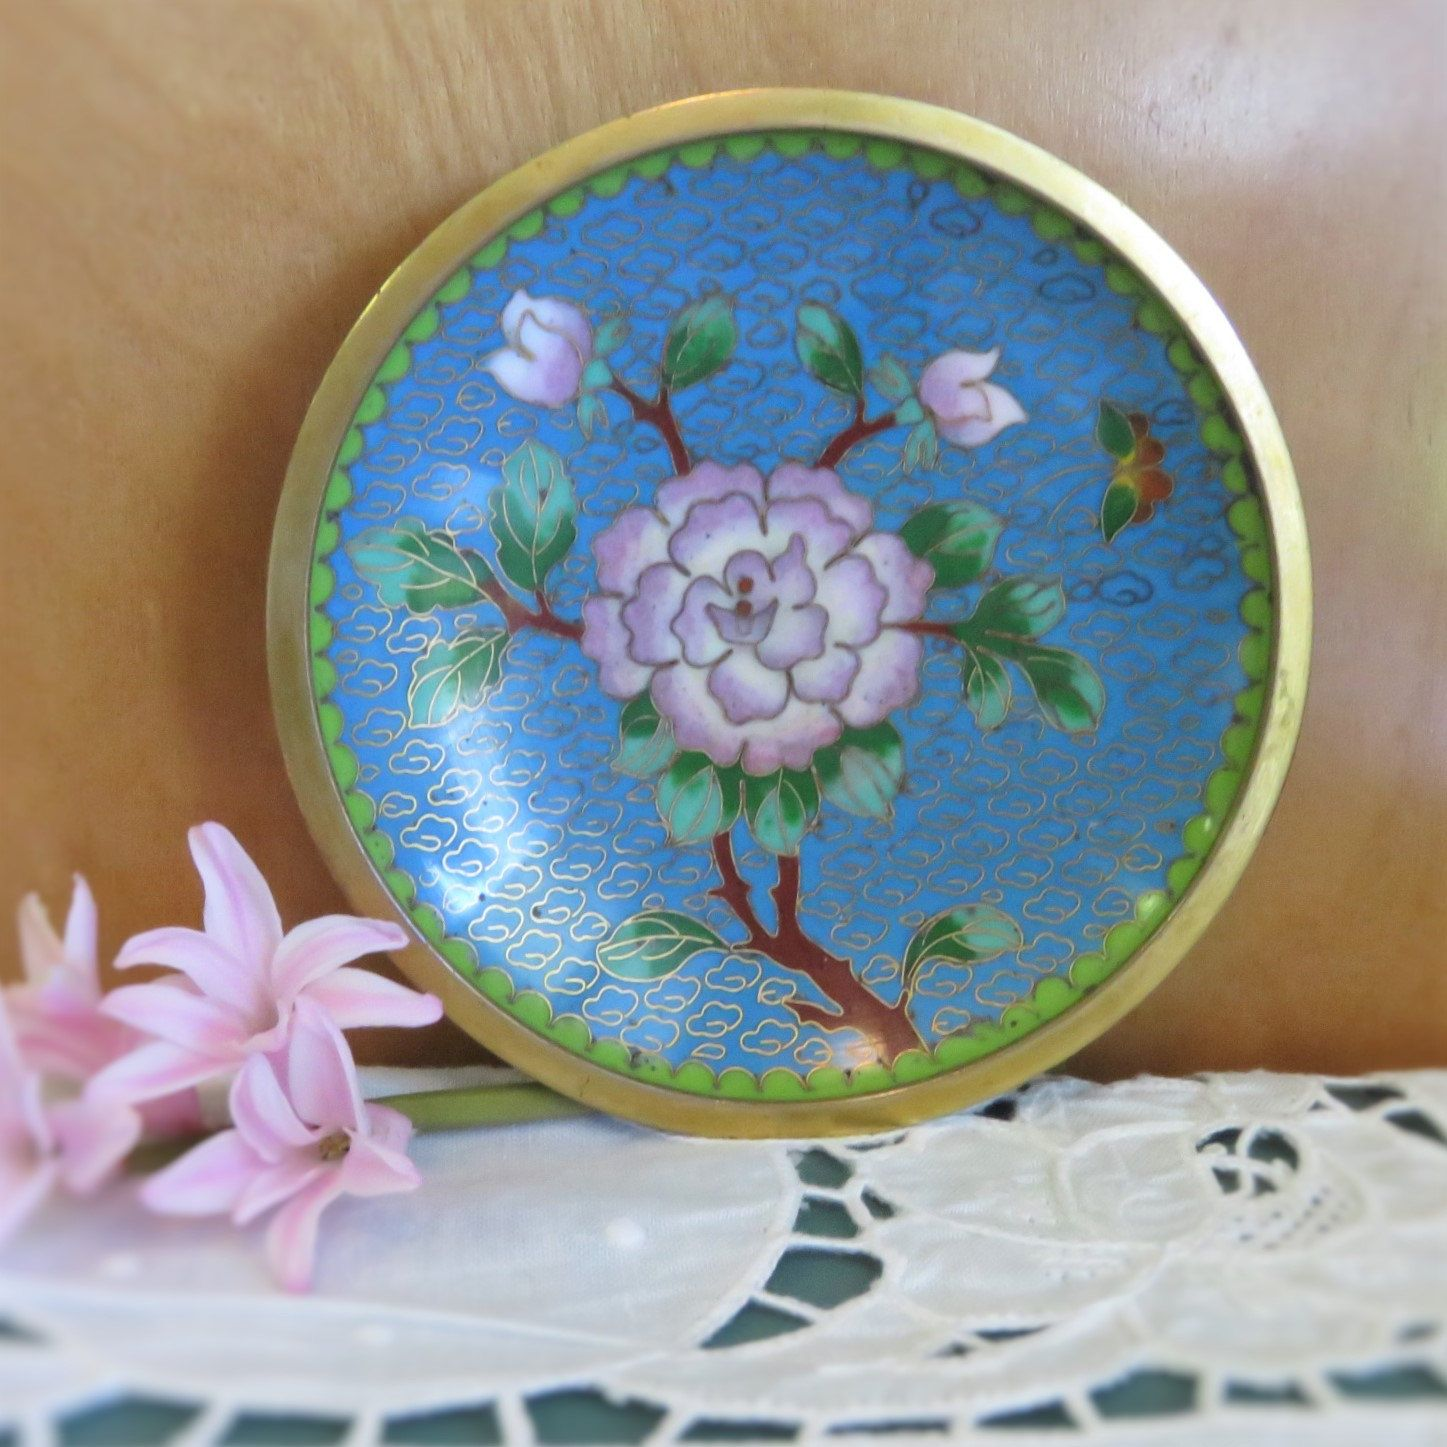 Vintage Cloisonne Dish Small Enameled Brass Plate Hand Painted Chinese Cloisonne Blue Pink Asian Home Decor Decorative Plates Hand Painted